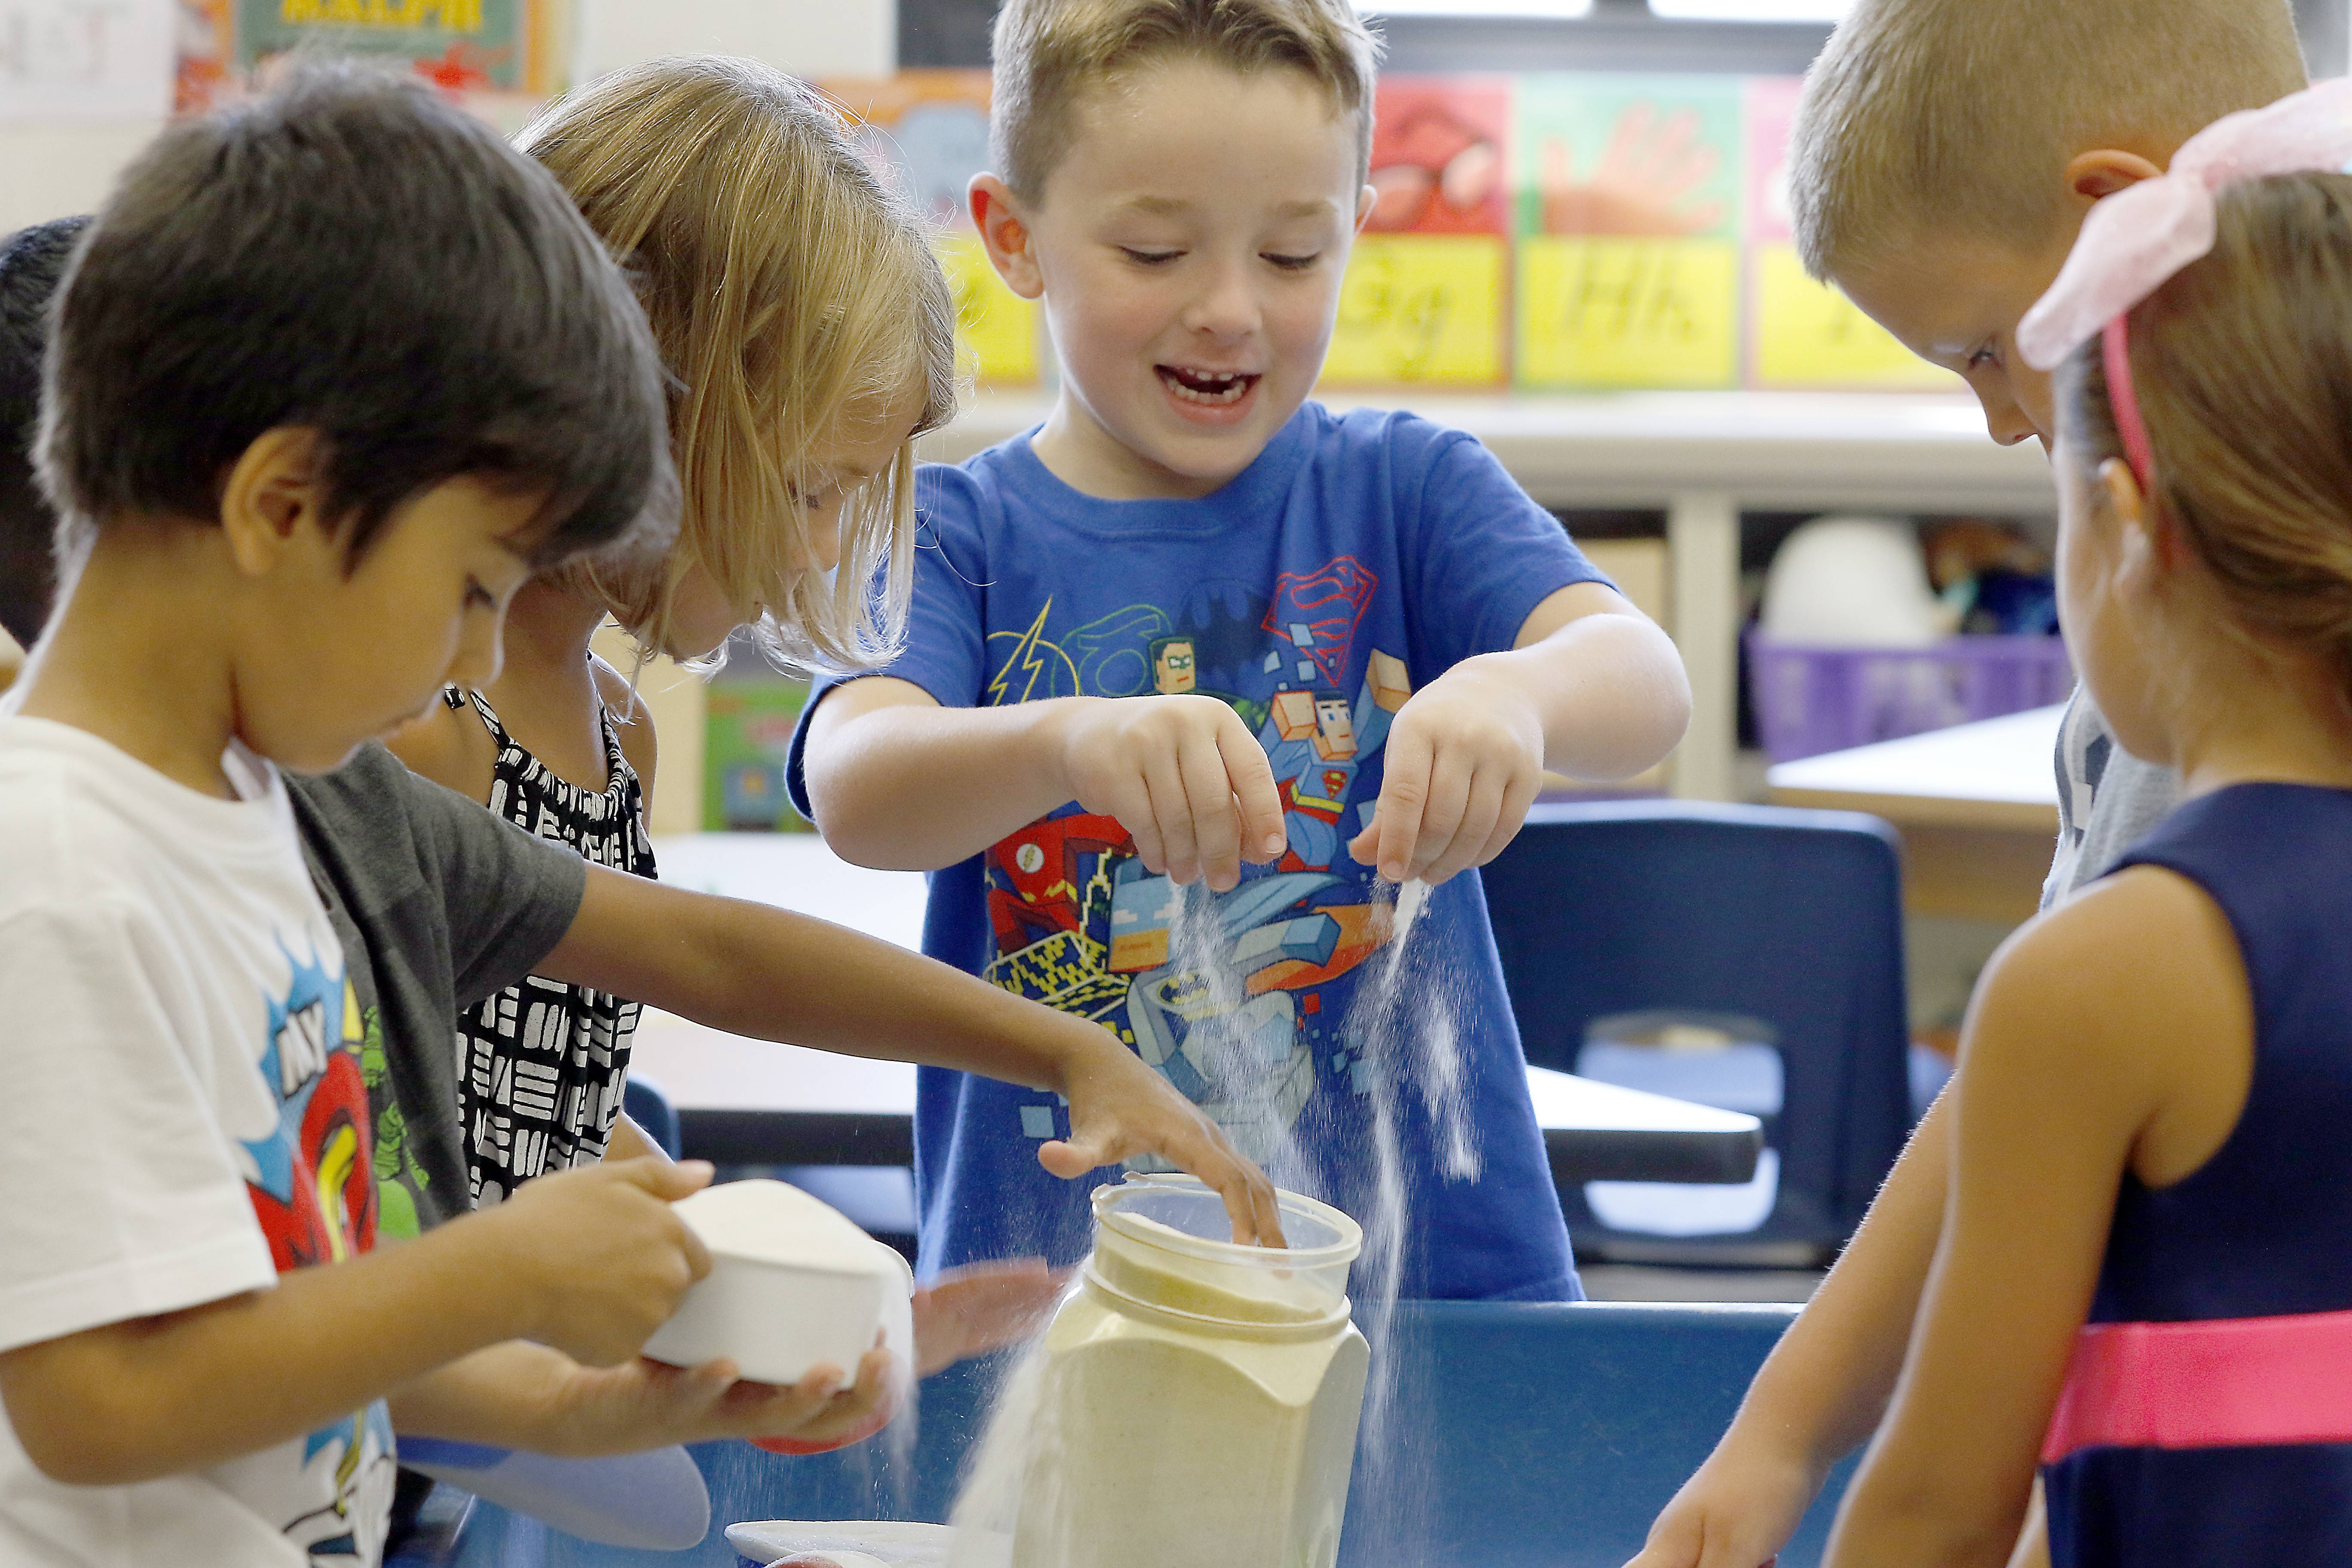 Suburban schools begin measuring kindergarten readiness